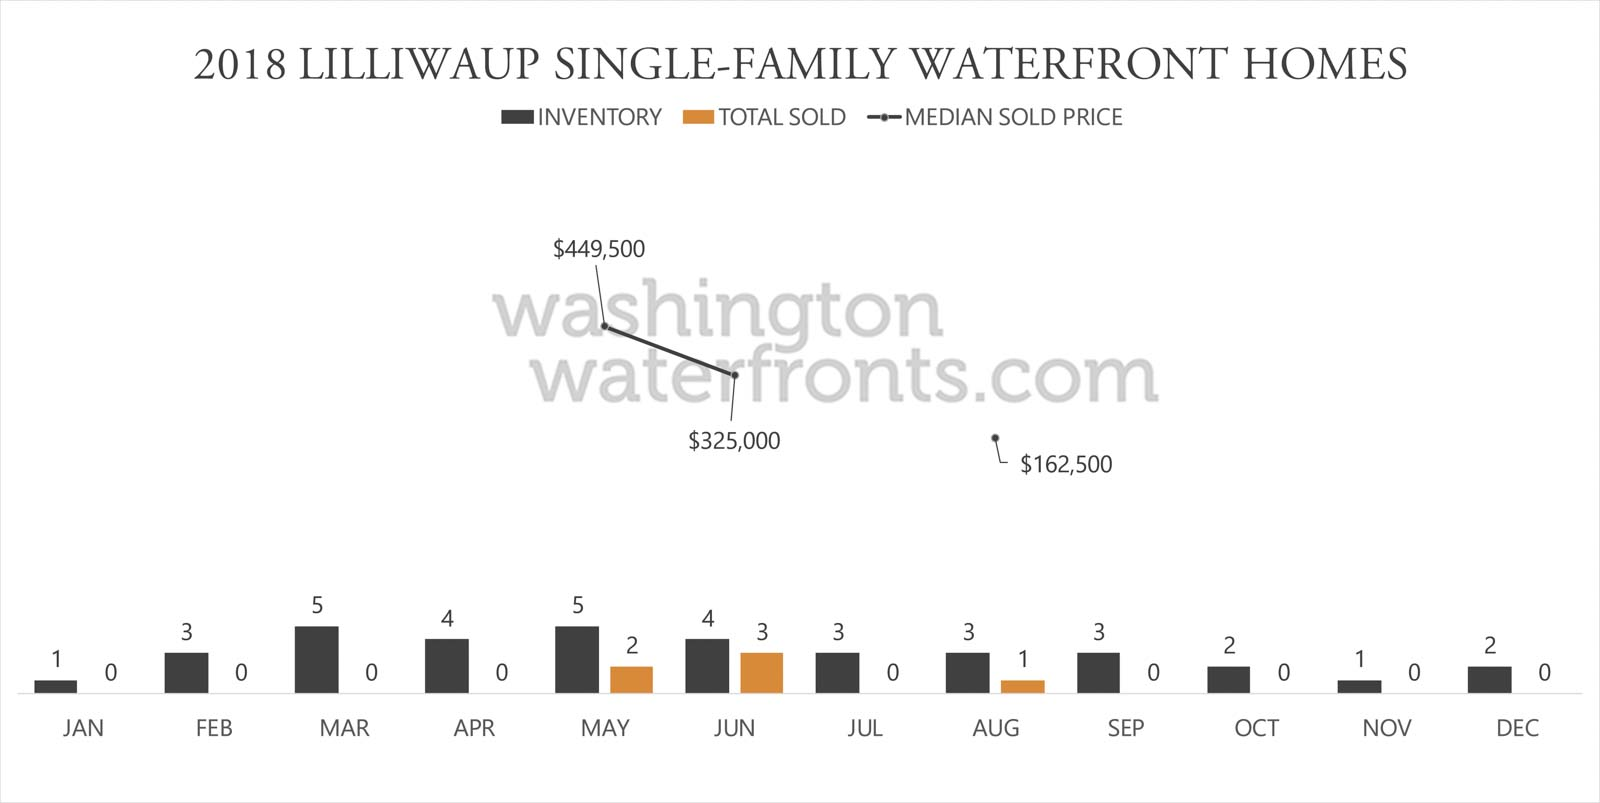 Lilliwaup Waterfront Inventory